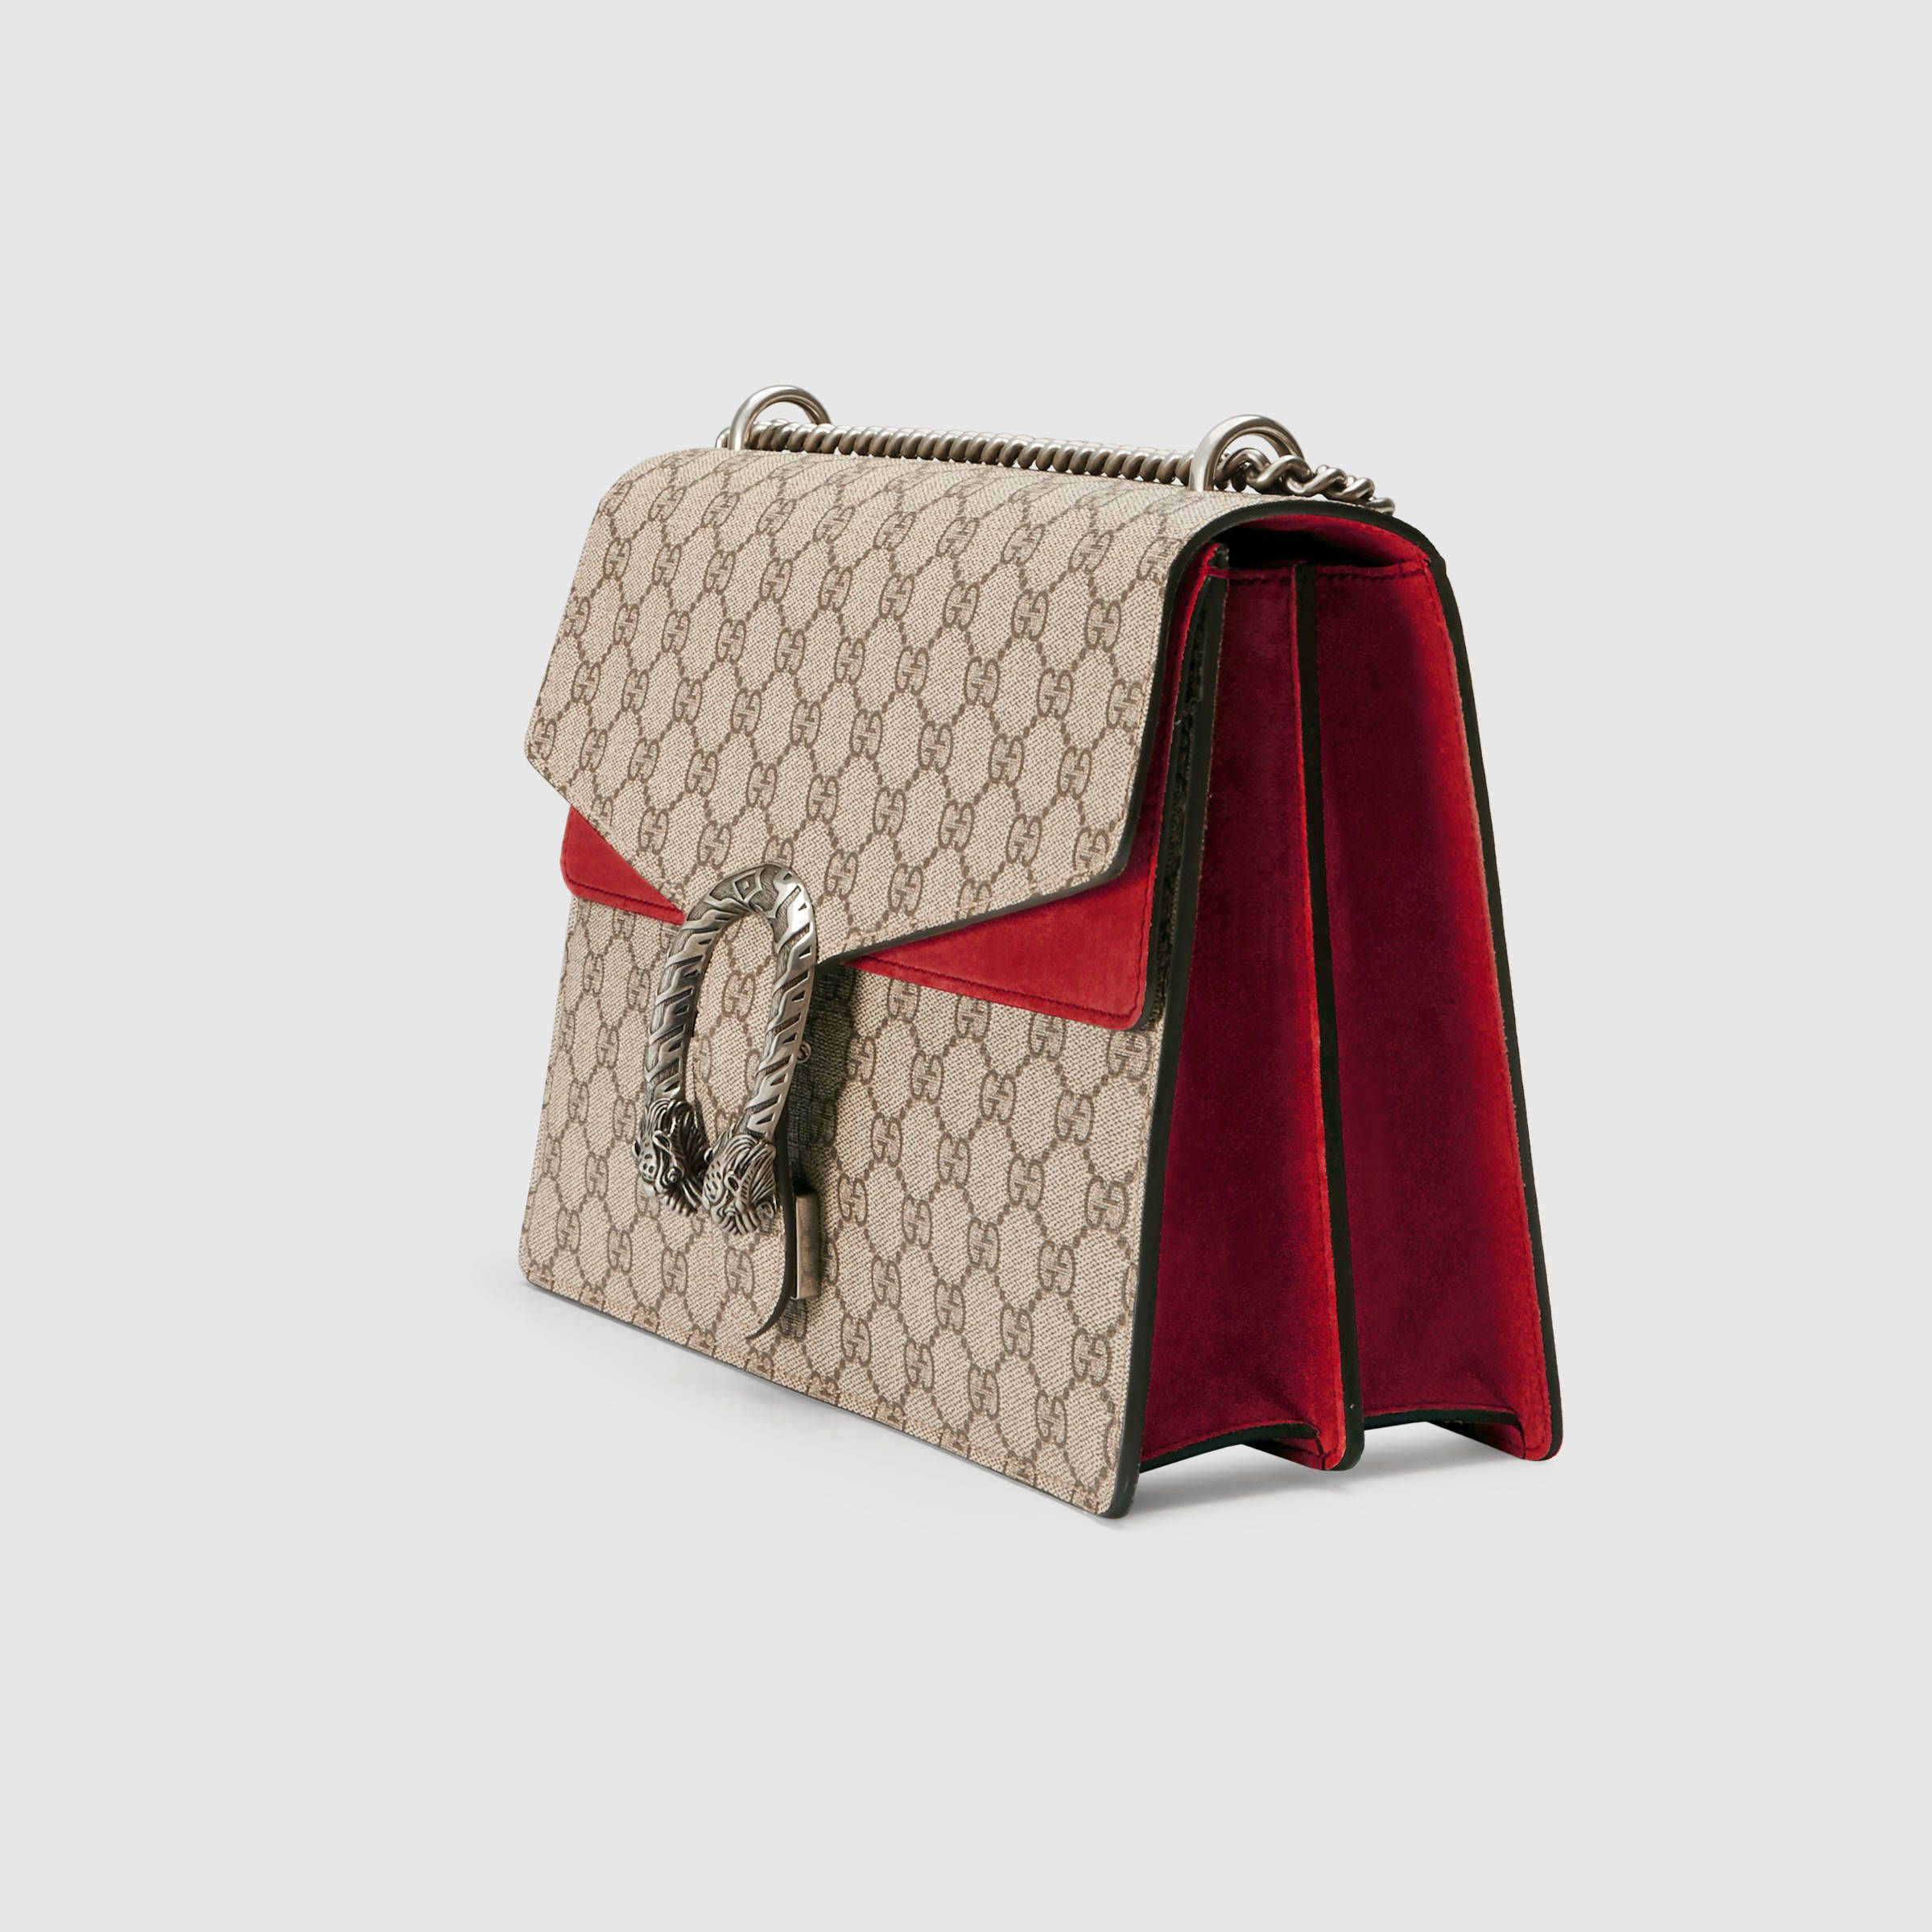 aebcfdf52a4d Gucci Women - Gucci Dionysus Beige/Ebony GG Supreme Canvas shoulder bag  with Red Suede Detail - $2,250.00